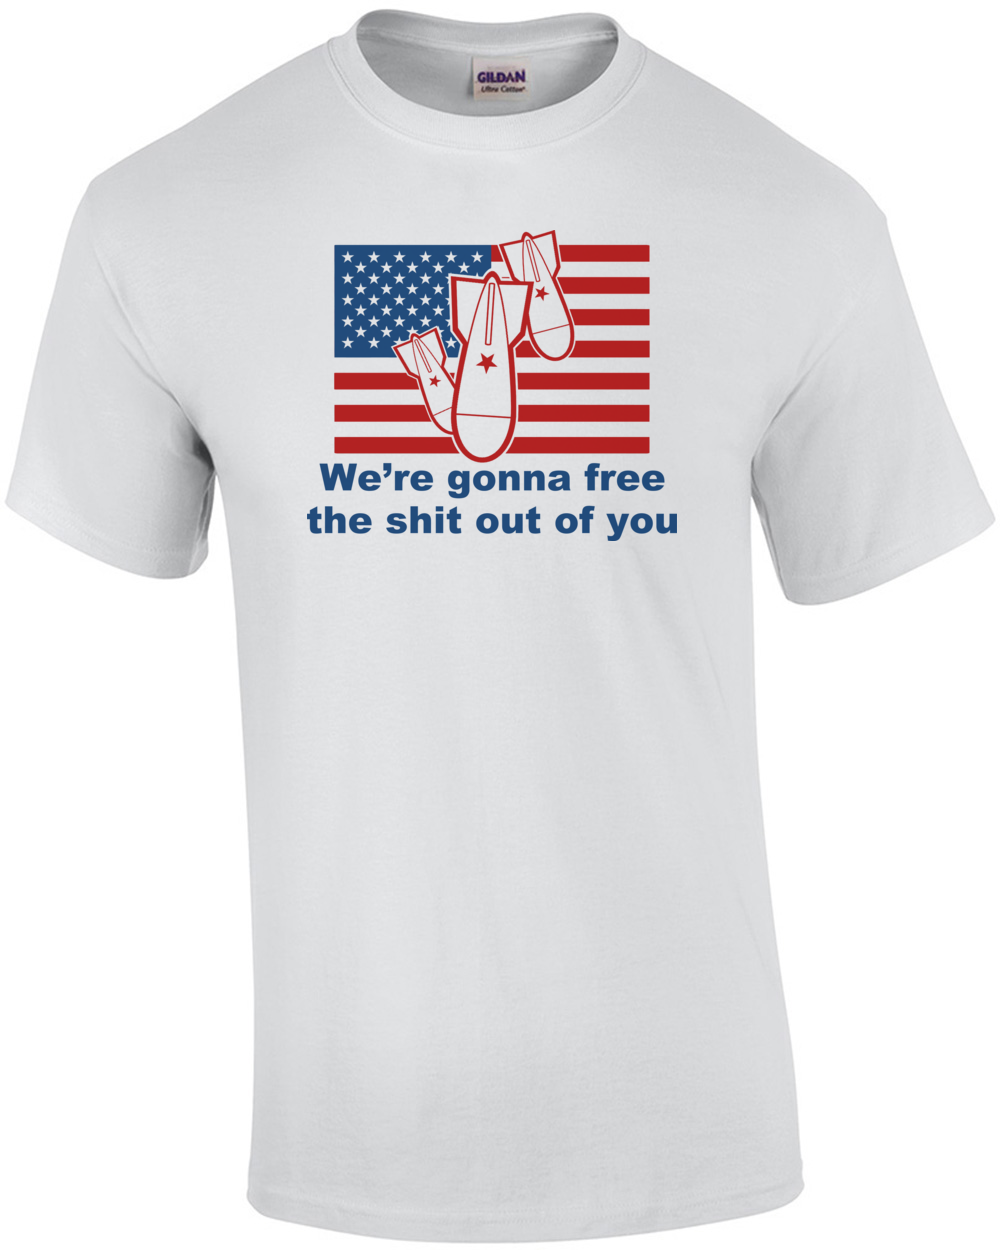 Funny T Shirts Usa | Is Shirt